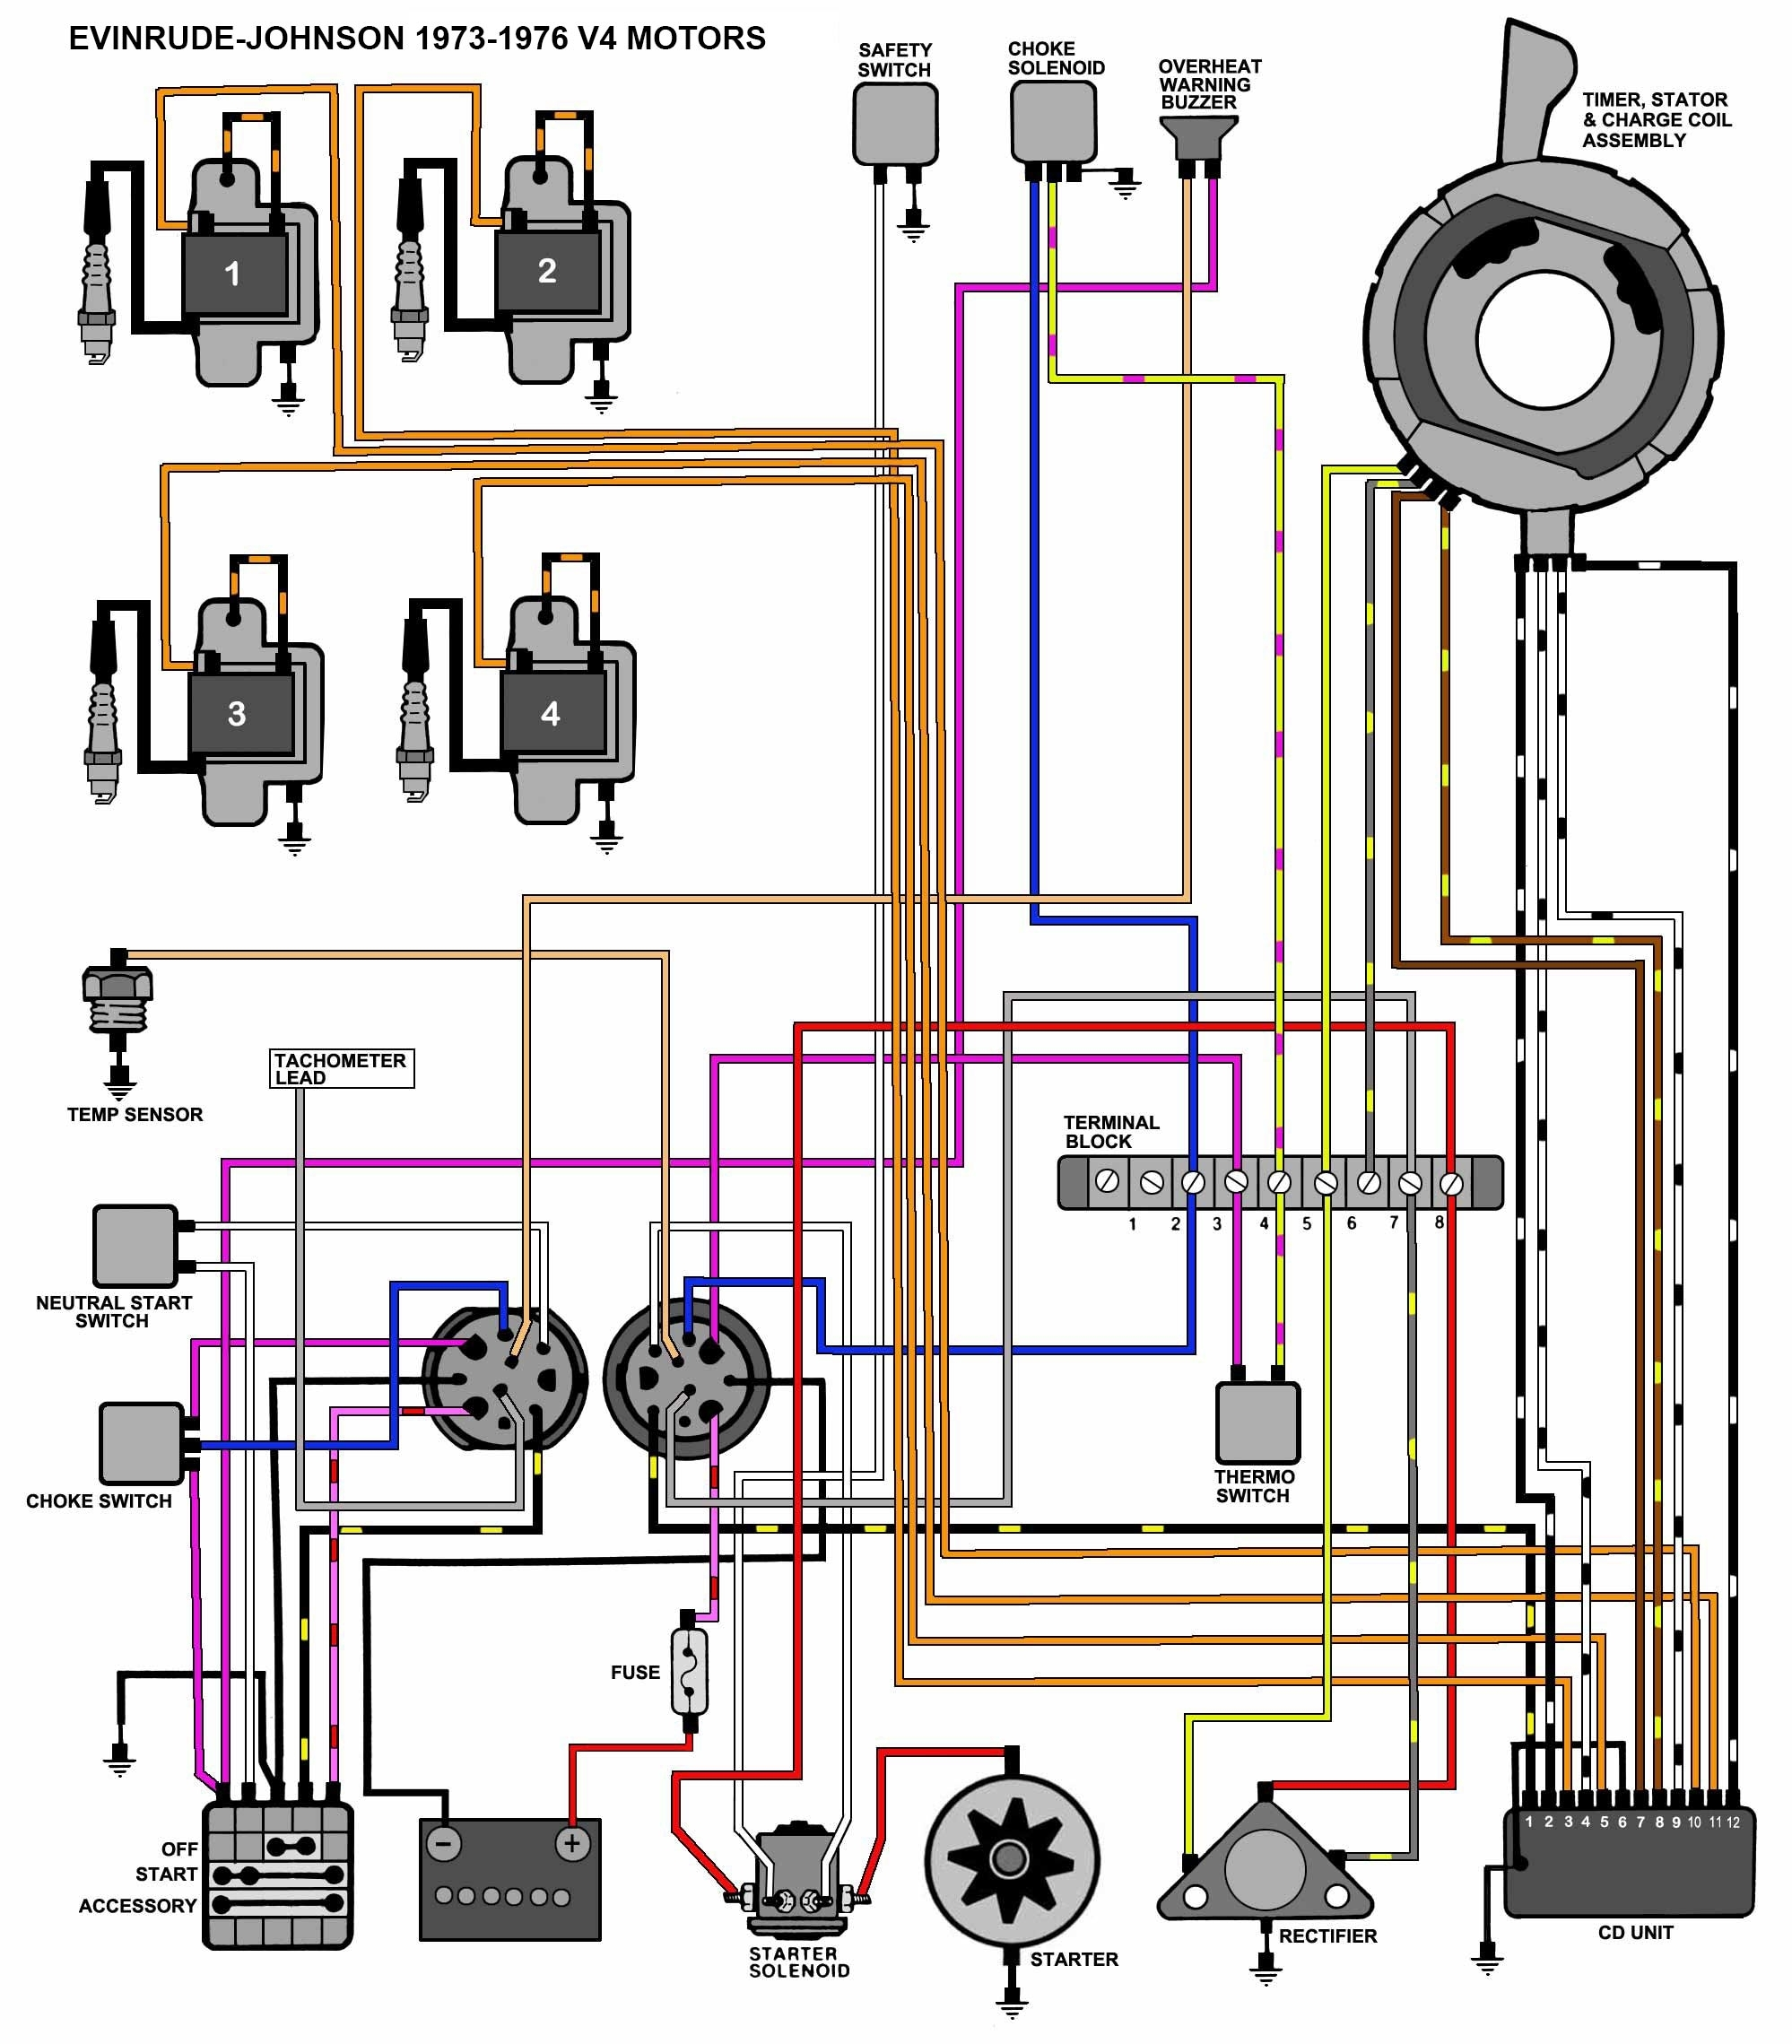 evinrude ignition switch wiring diagram with 1969 omc 55 wiring throughout 70 hp evinrude wiring diagram?resize\\=665%2C759\\&ssl\\=1 100 [ 88 mercury 150 wiring diagram ] i have a 40 hp 1977 with Trigonometry Unit Circle Diagram Radians at reclaimingppi.co